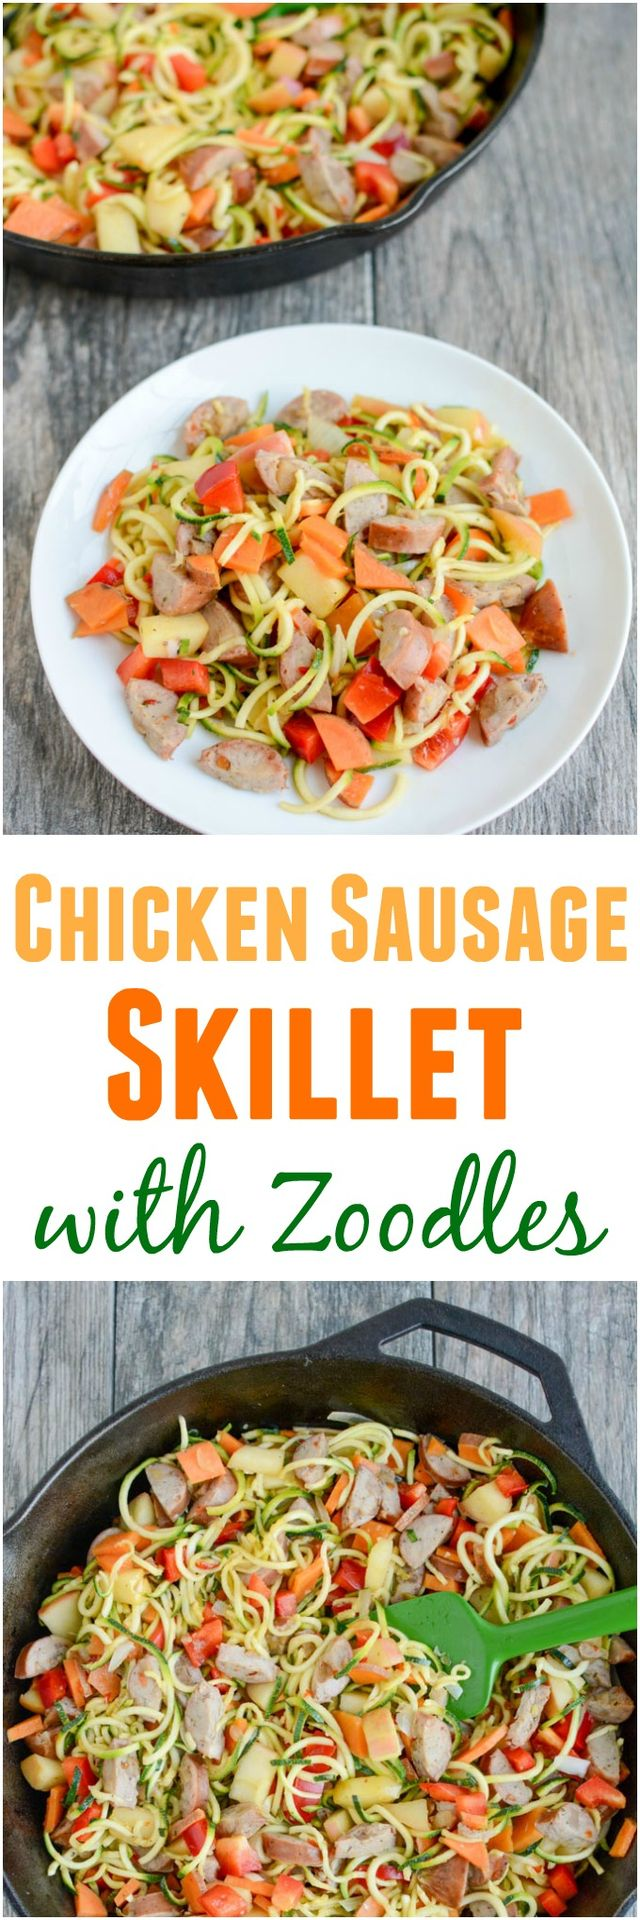 Chicken Sausage Skillet with Zoodles